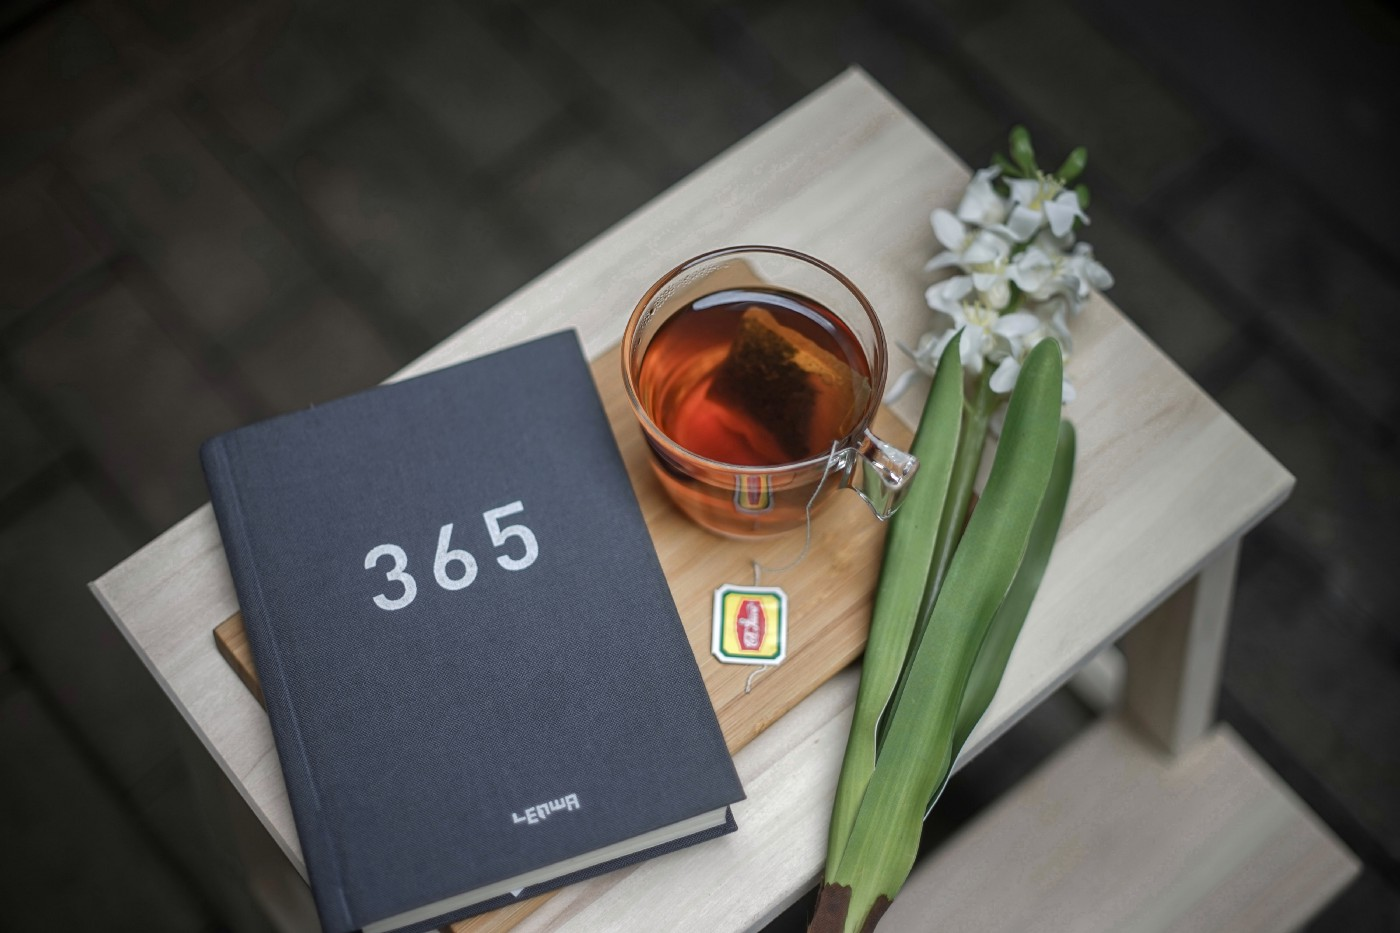 A black diary, a glass of tea, and a flower on a table.